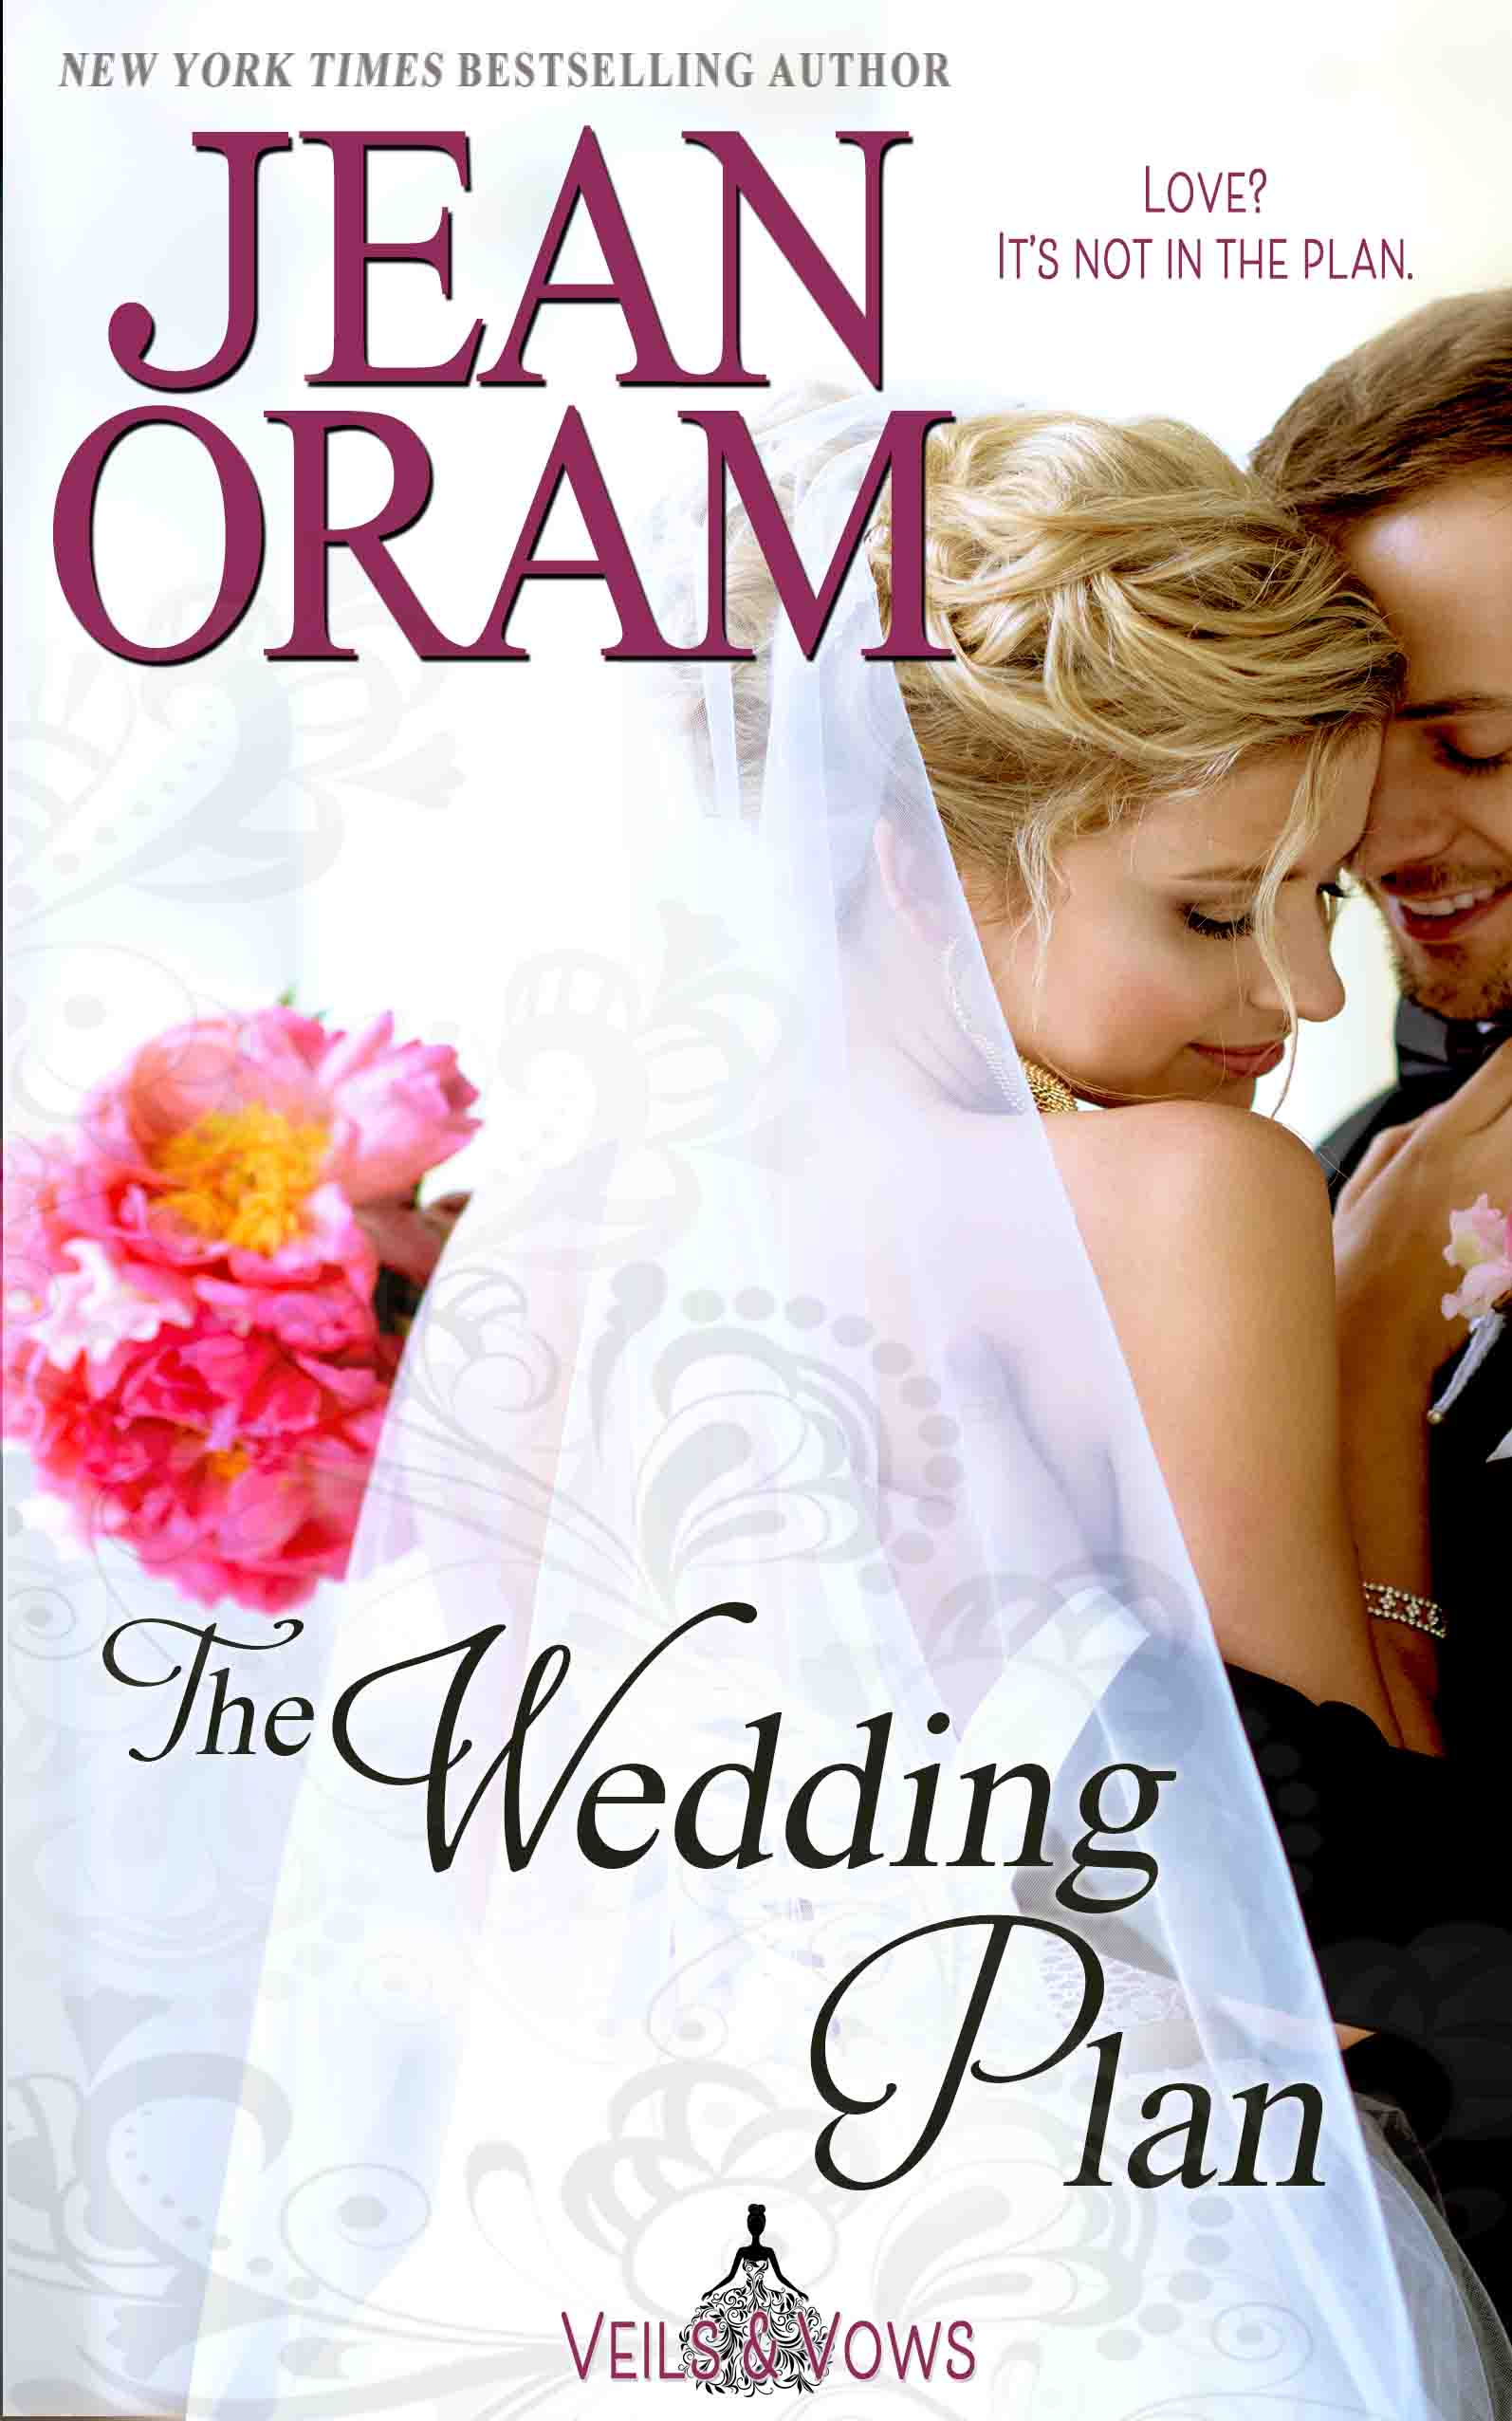 A fake marriage of convenience romance. Sweet MOC small town romance. Book 3 in the Veils and Vows series by Jean Oram.